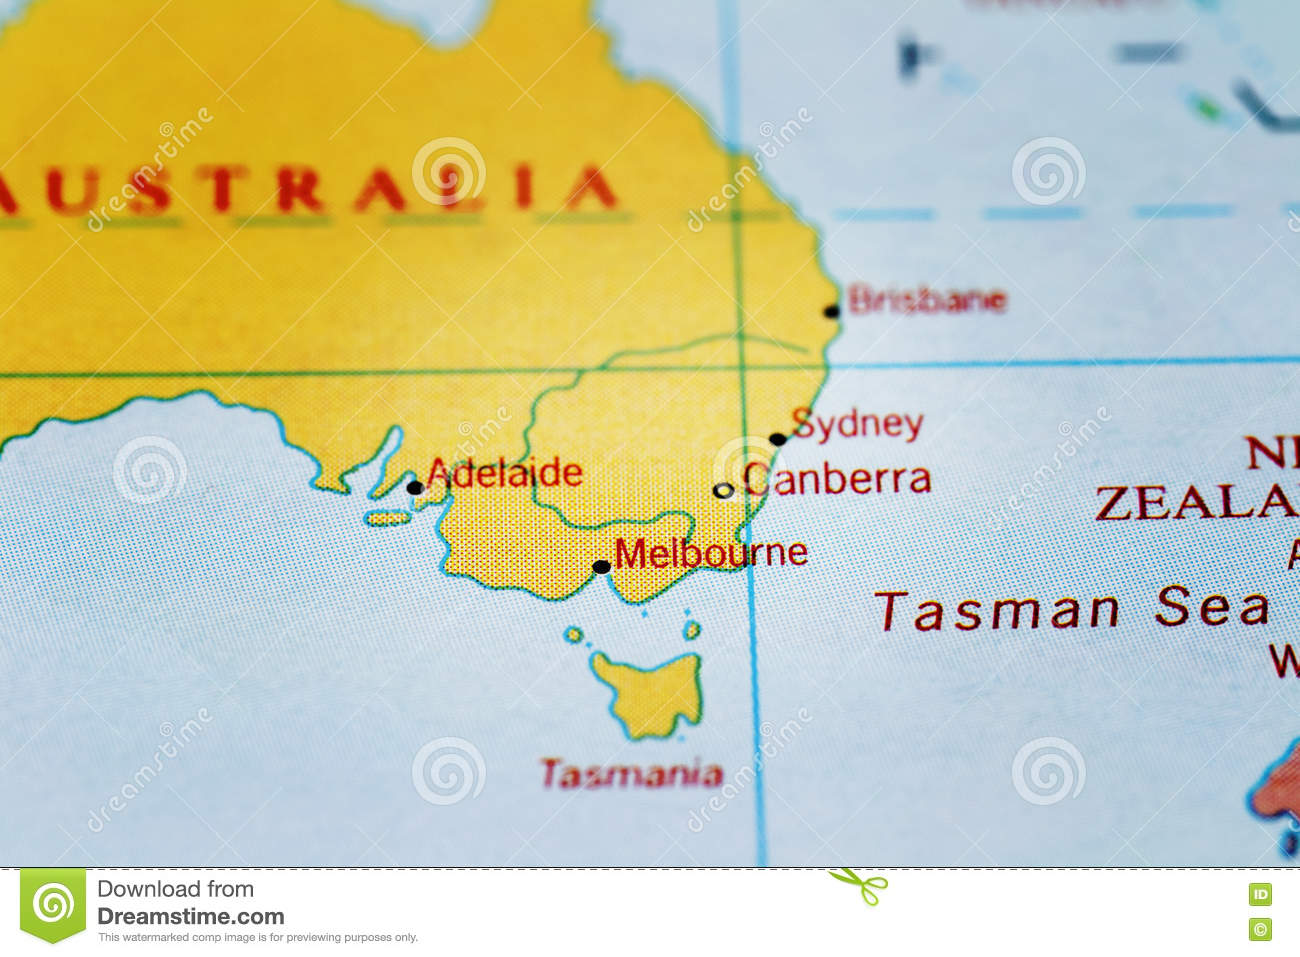 Adelaide Map Of Australia.Canberra Sydney Melbourne Adelaide And Australia On Map Stock